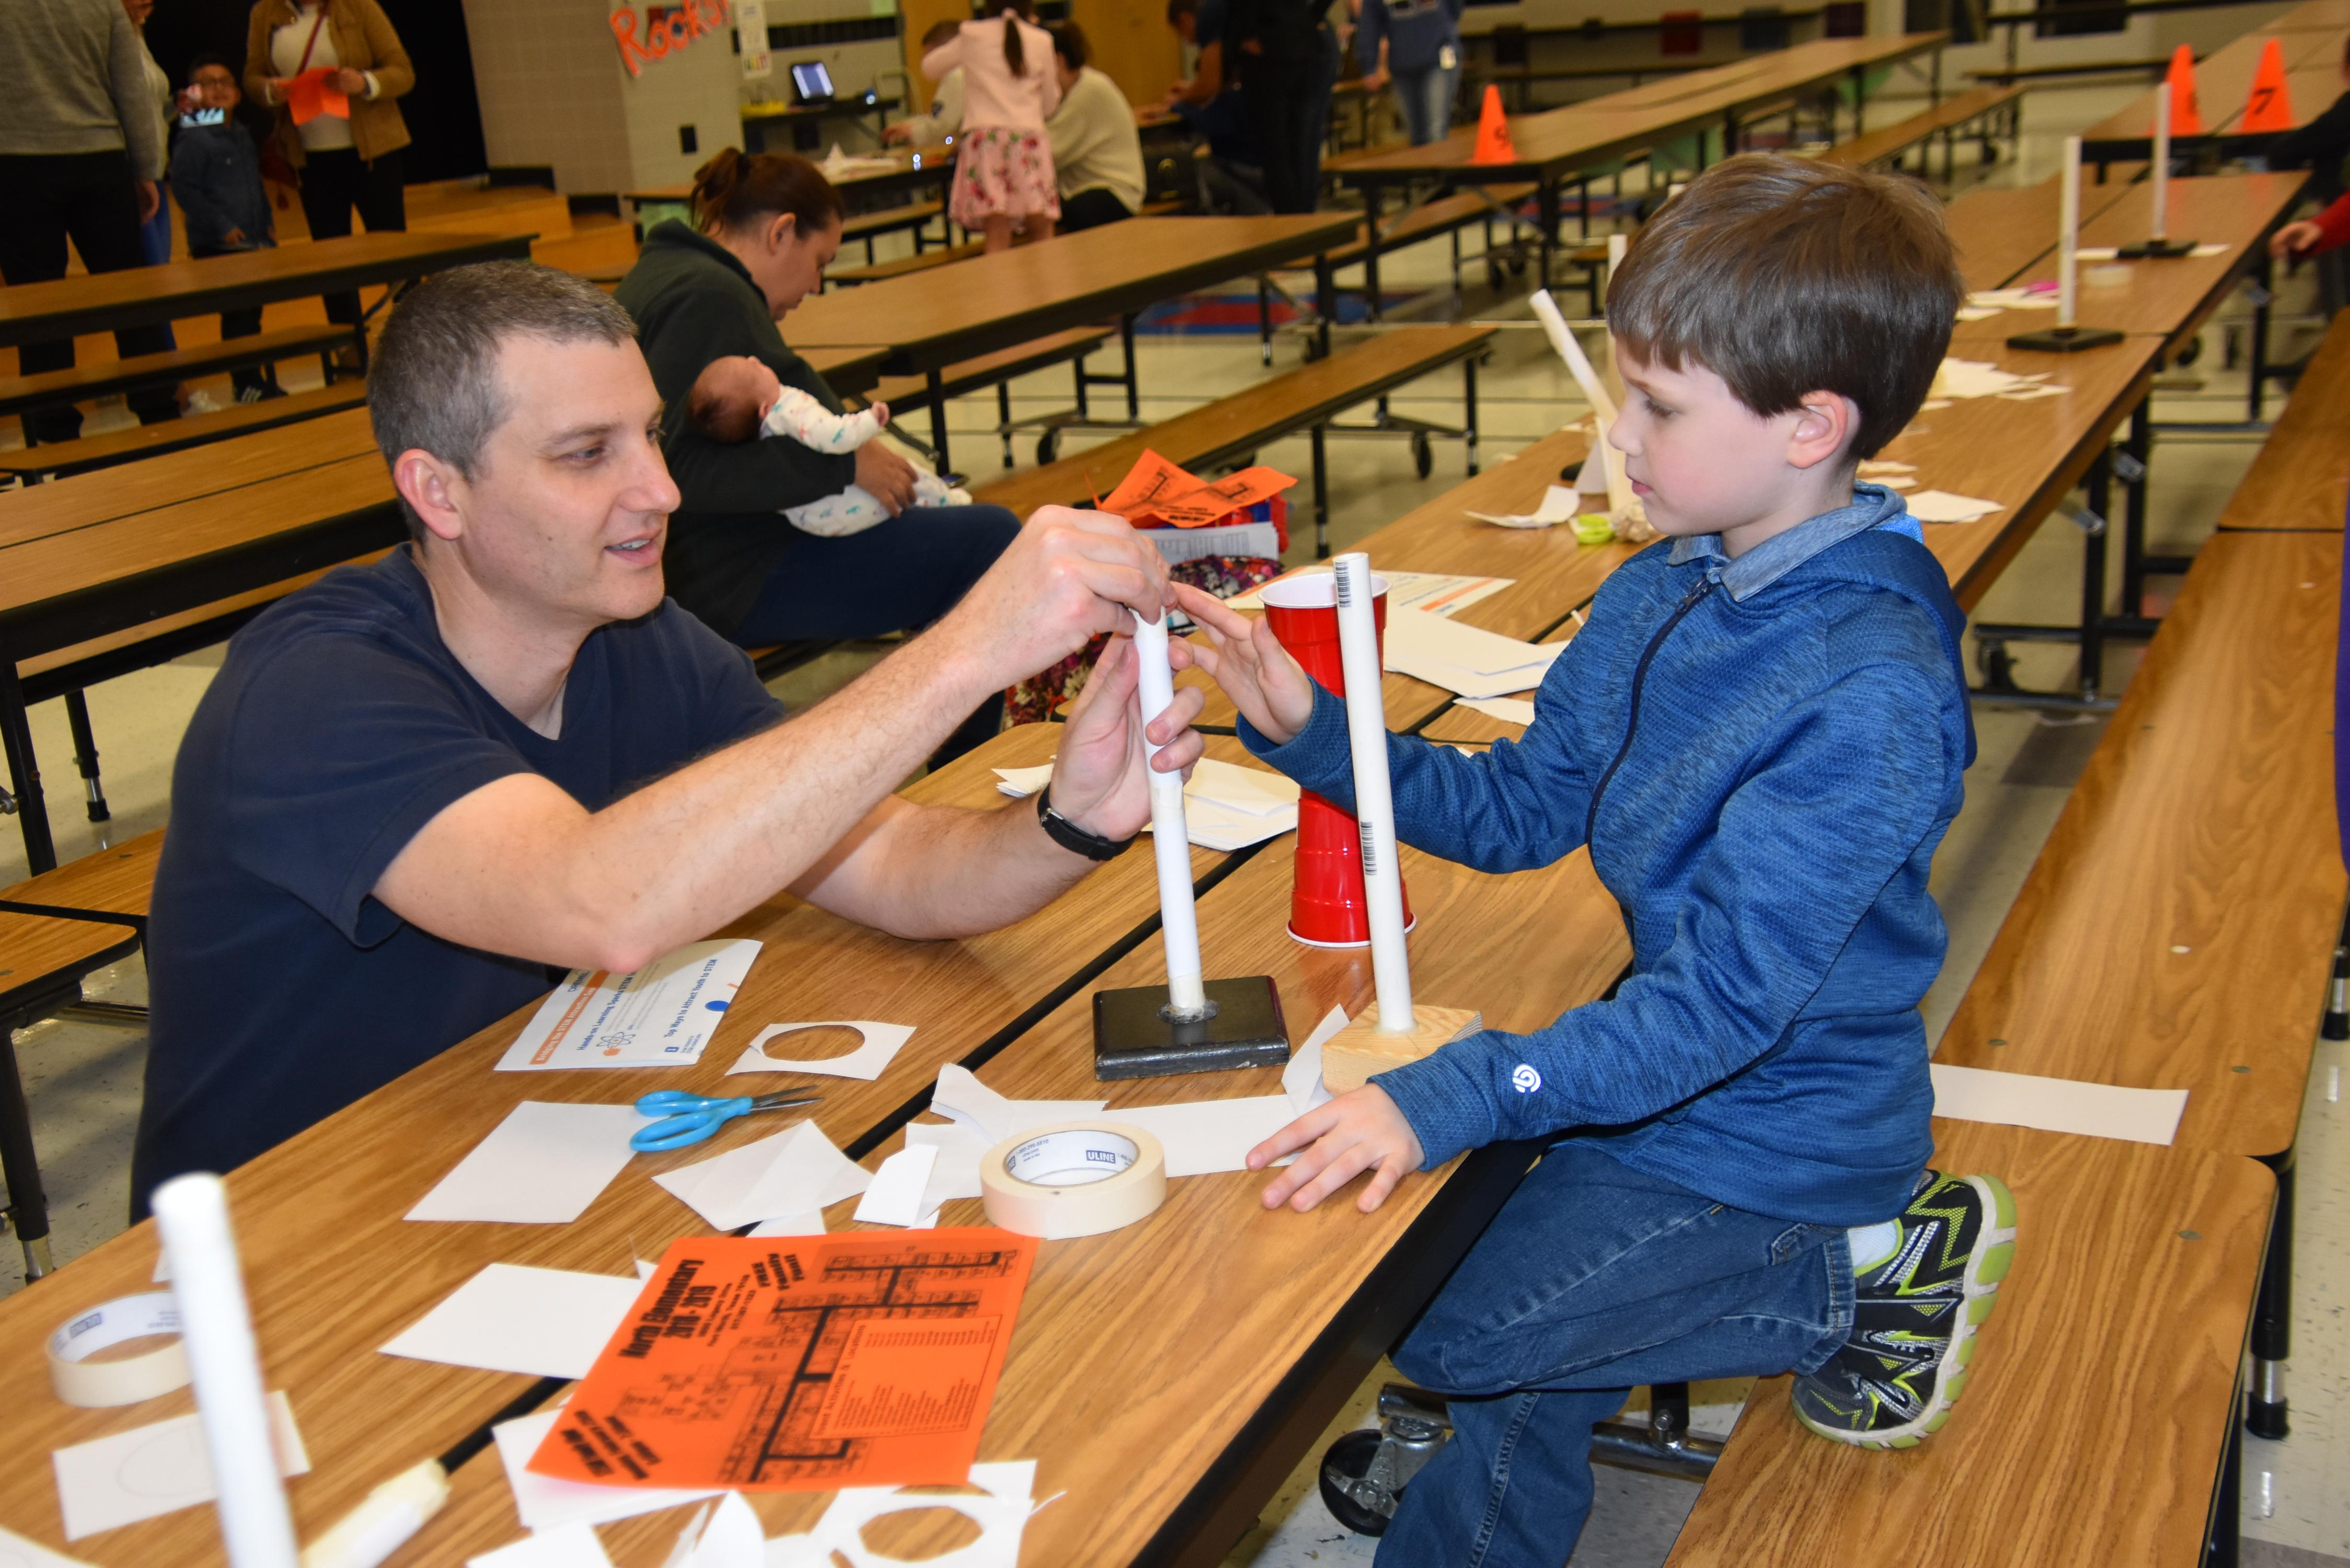 North Elementary families had the opportunity to preview what the kids learn in Science, Technology, Engineering, Arts and Math (STEAM) during the school's STEAM Family Night on Feb. 23.